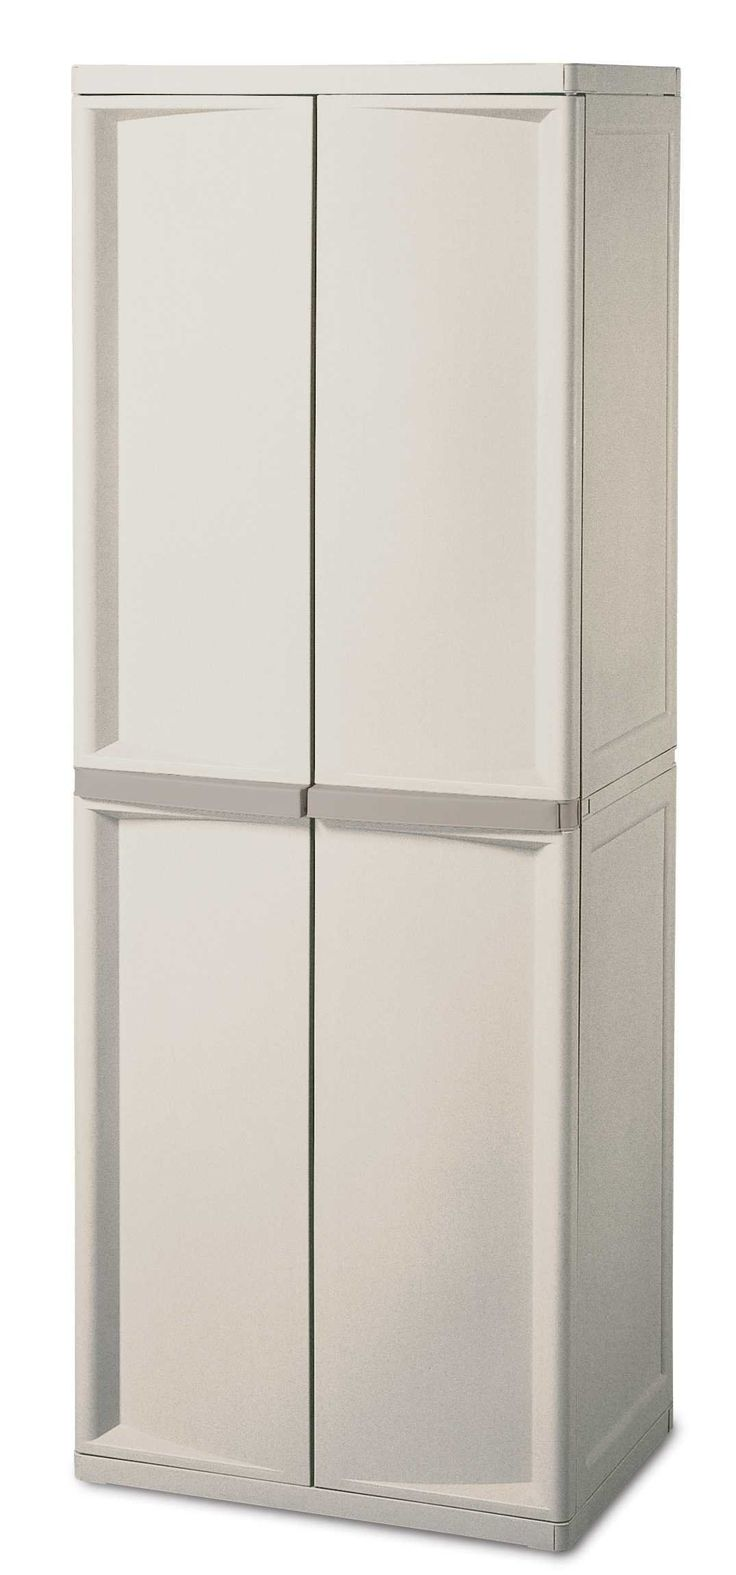 Best Amazon Com Sterilite 01428501 4 Shelf Utility Cabinet 400 x 300